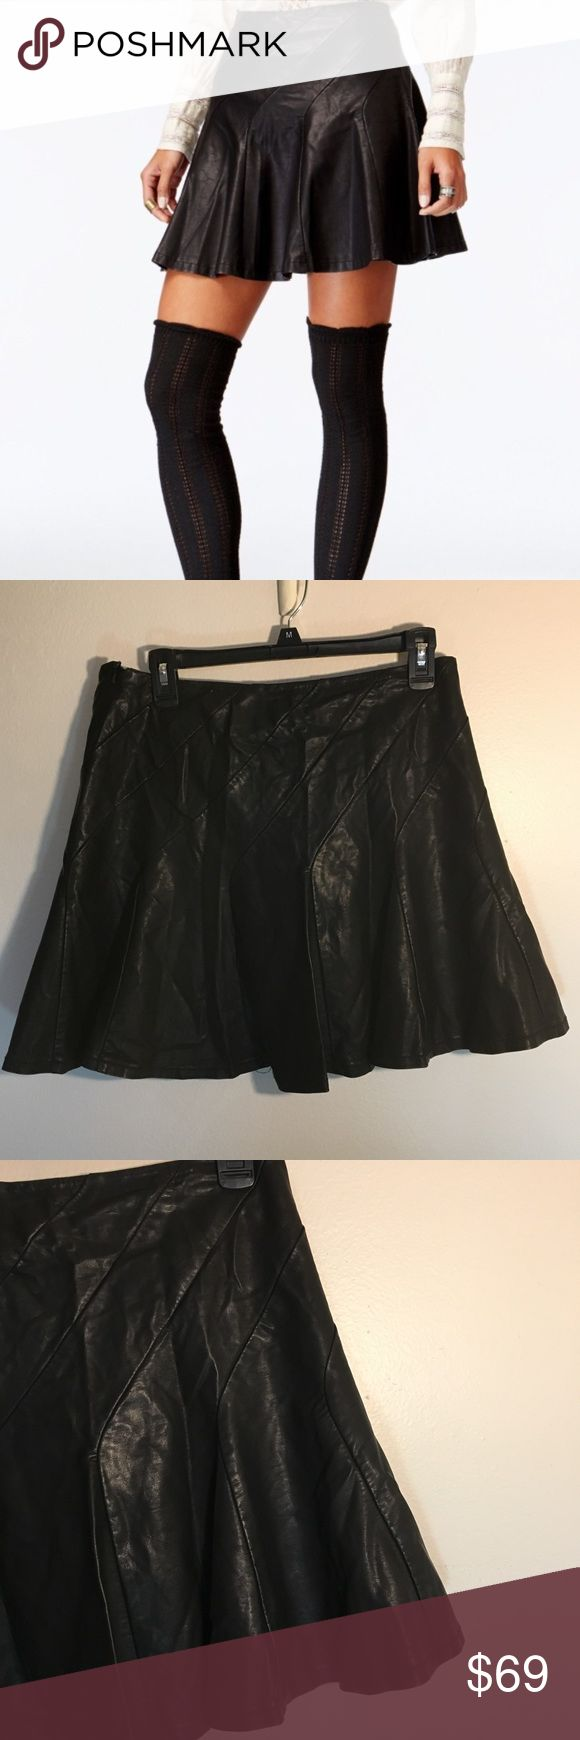 Free People Faux Leather Skirt New with tags Free People. Sexy leather look without it being super tight. Lining on the inside. Faux leather with skater skirt style. Subtle diagonal stitching that falls into the pleat. Free People Skirts Mini